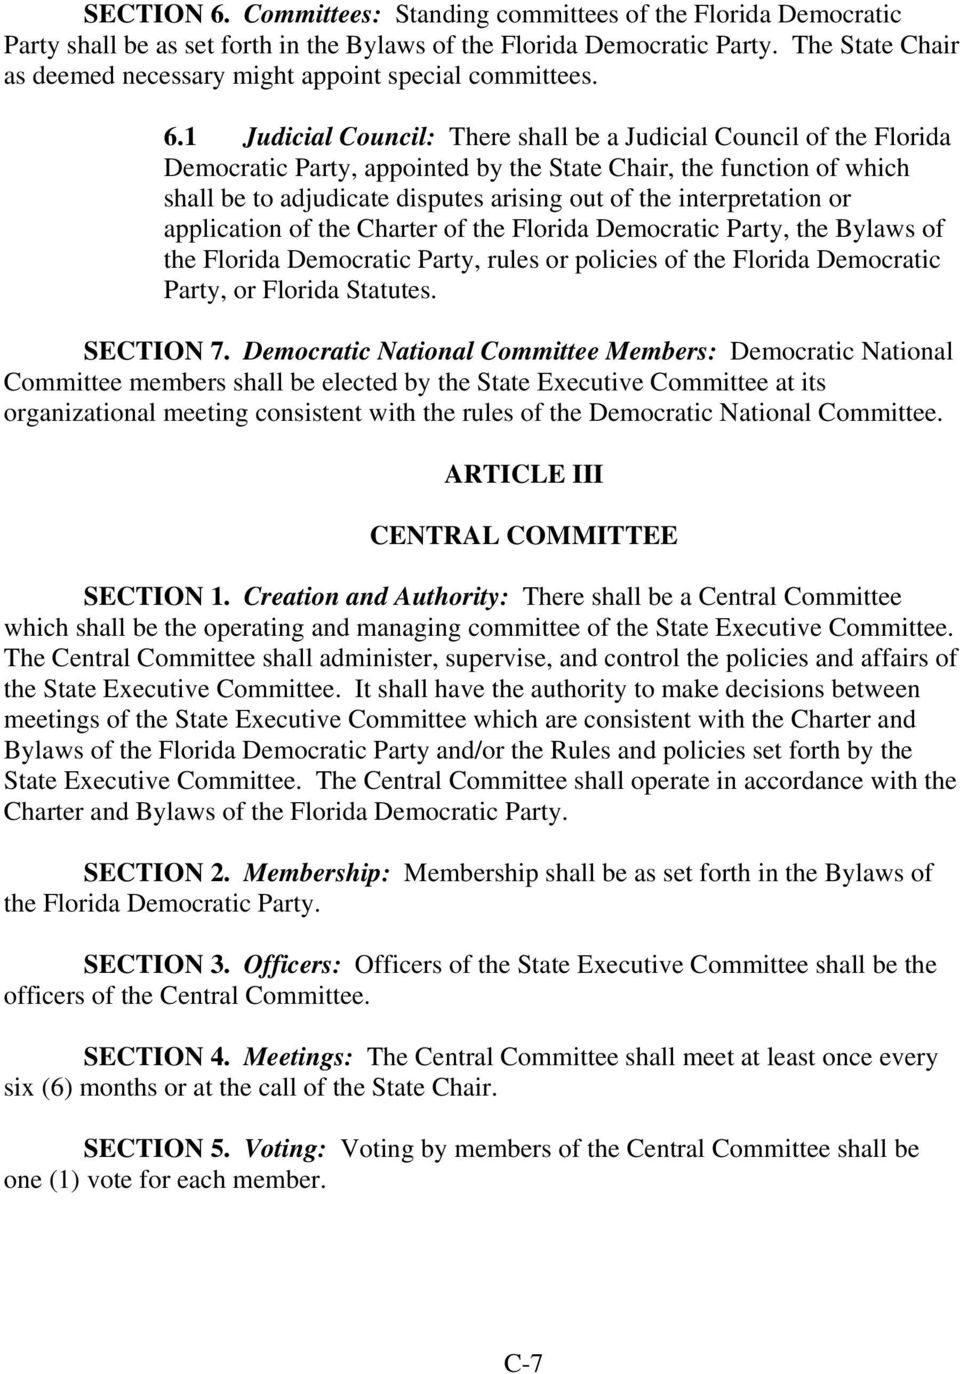 1 Judicial Council: There shall be a Judicial Council of the Florida Democratic Party, appointed by the State Chair, the function of which shall be to adjudicate disputes arising out of the